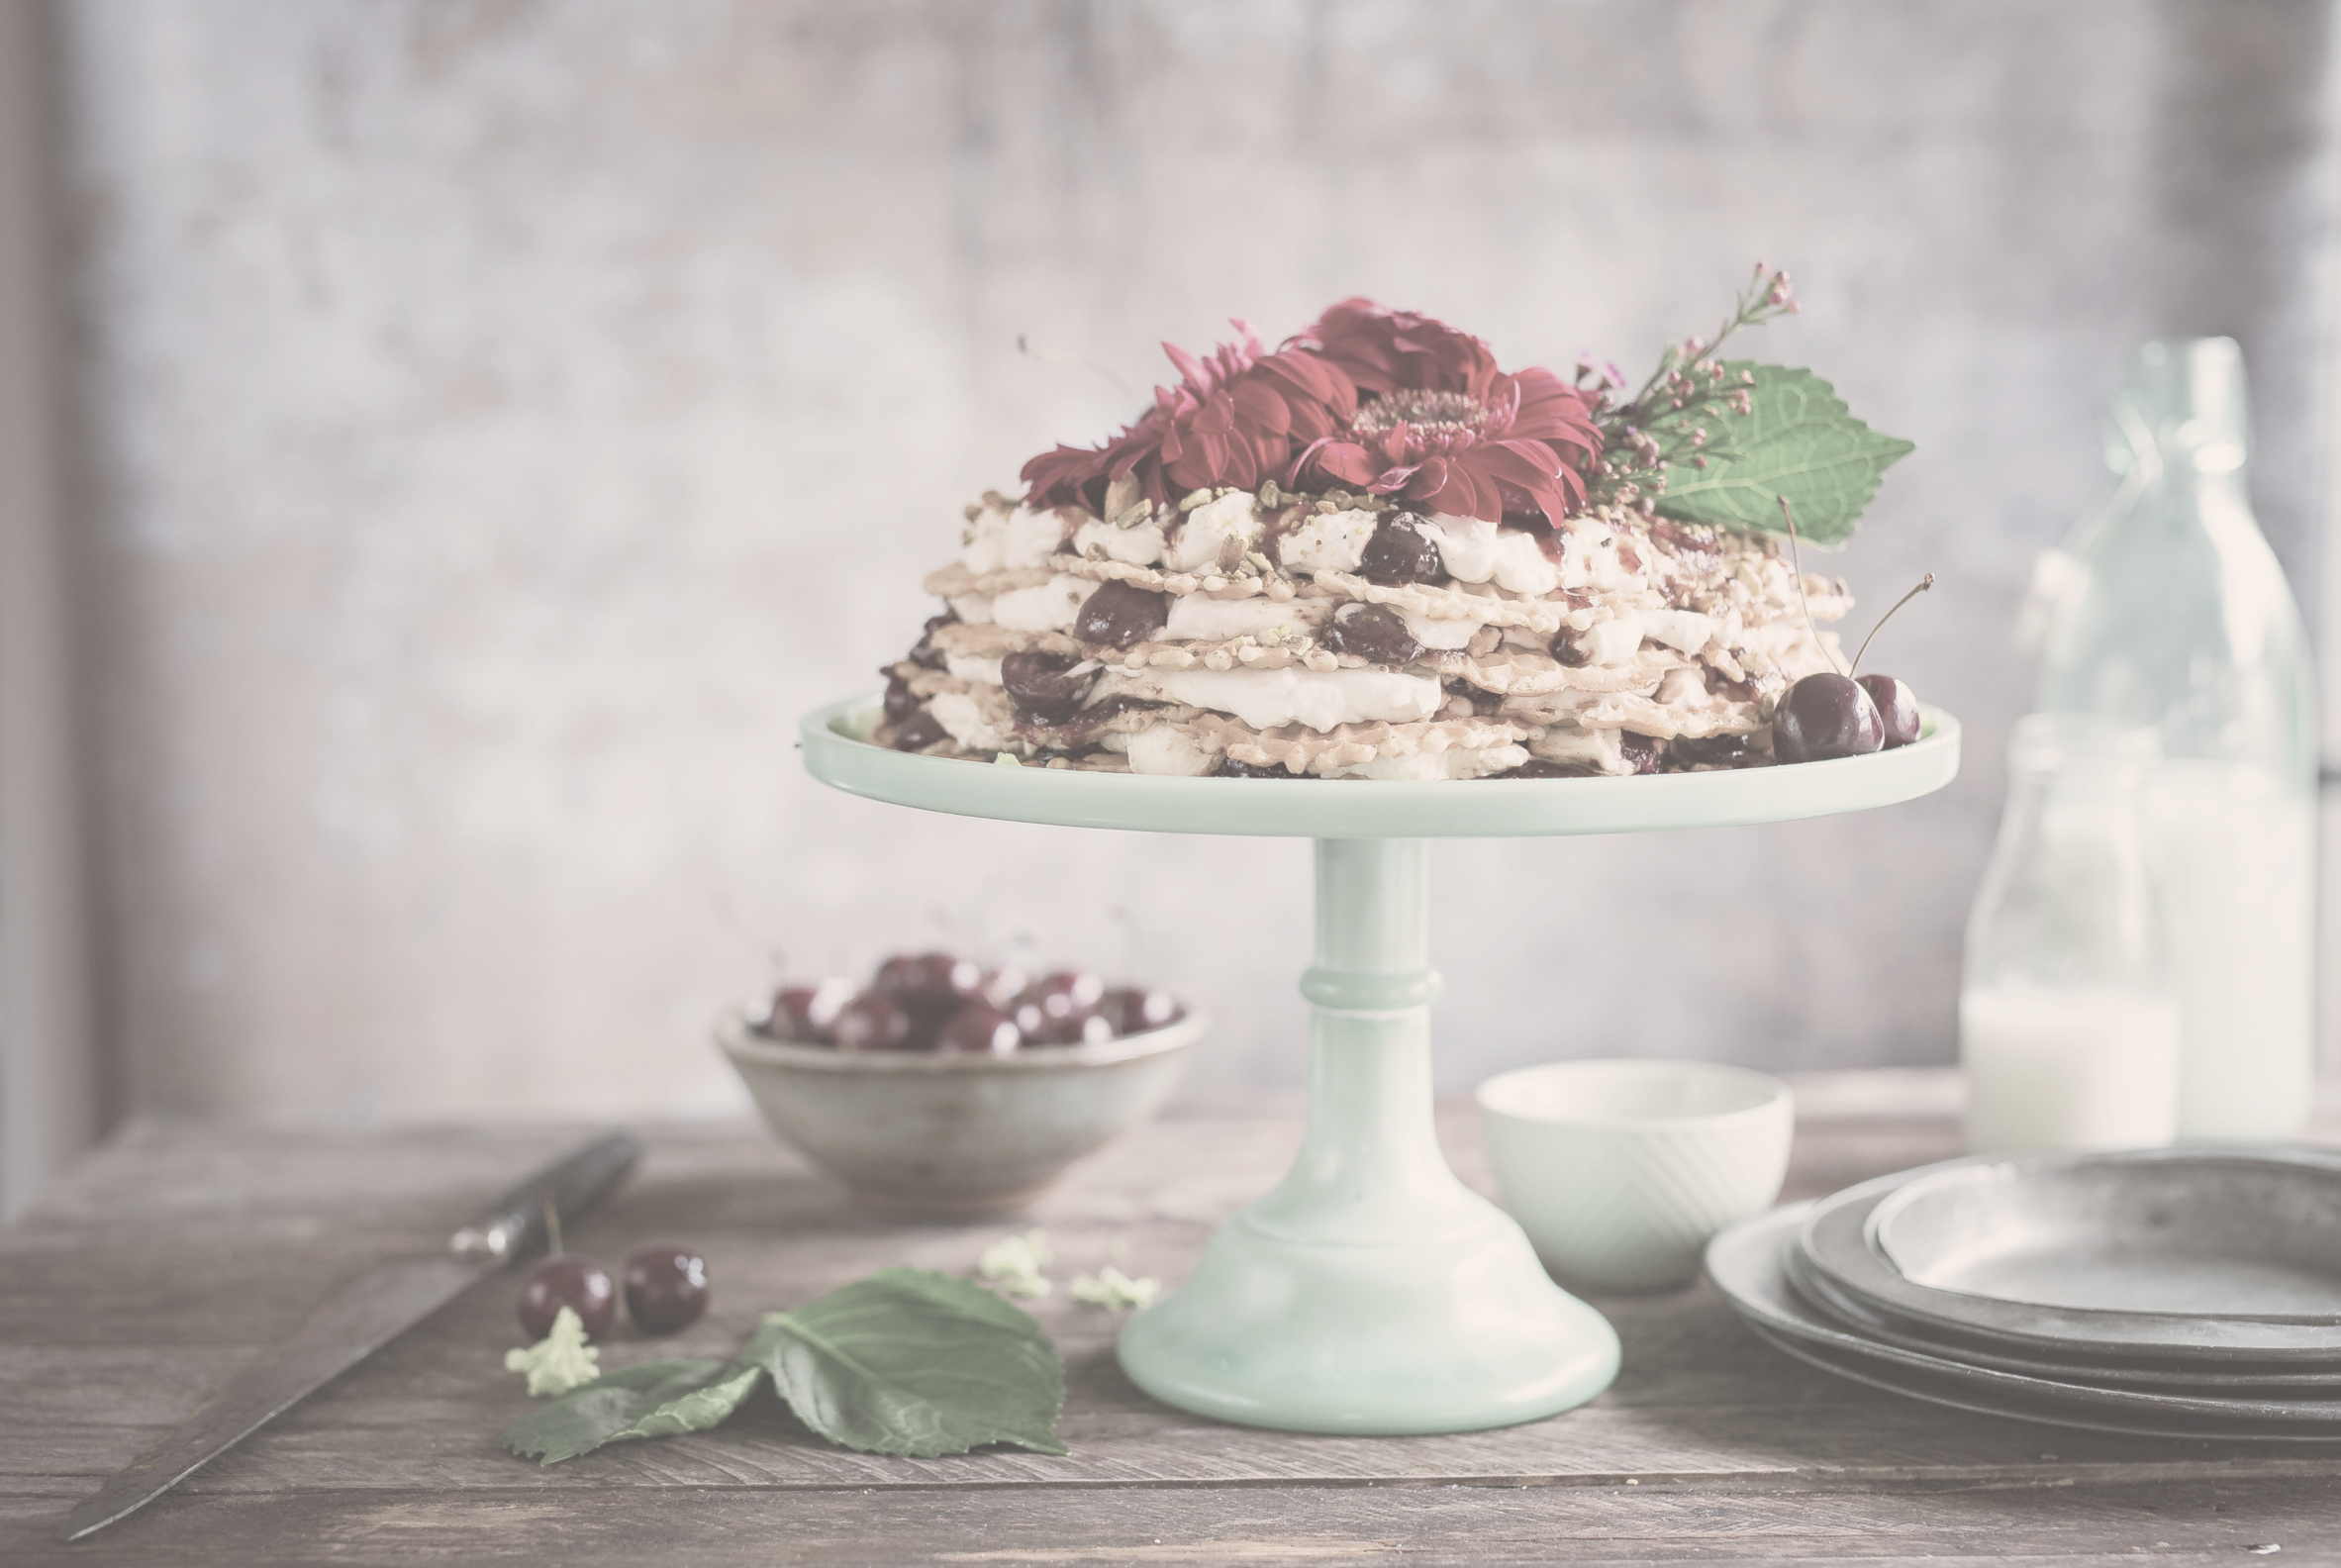 Layered dessert on a rustic table